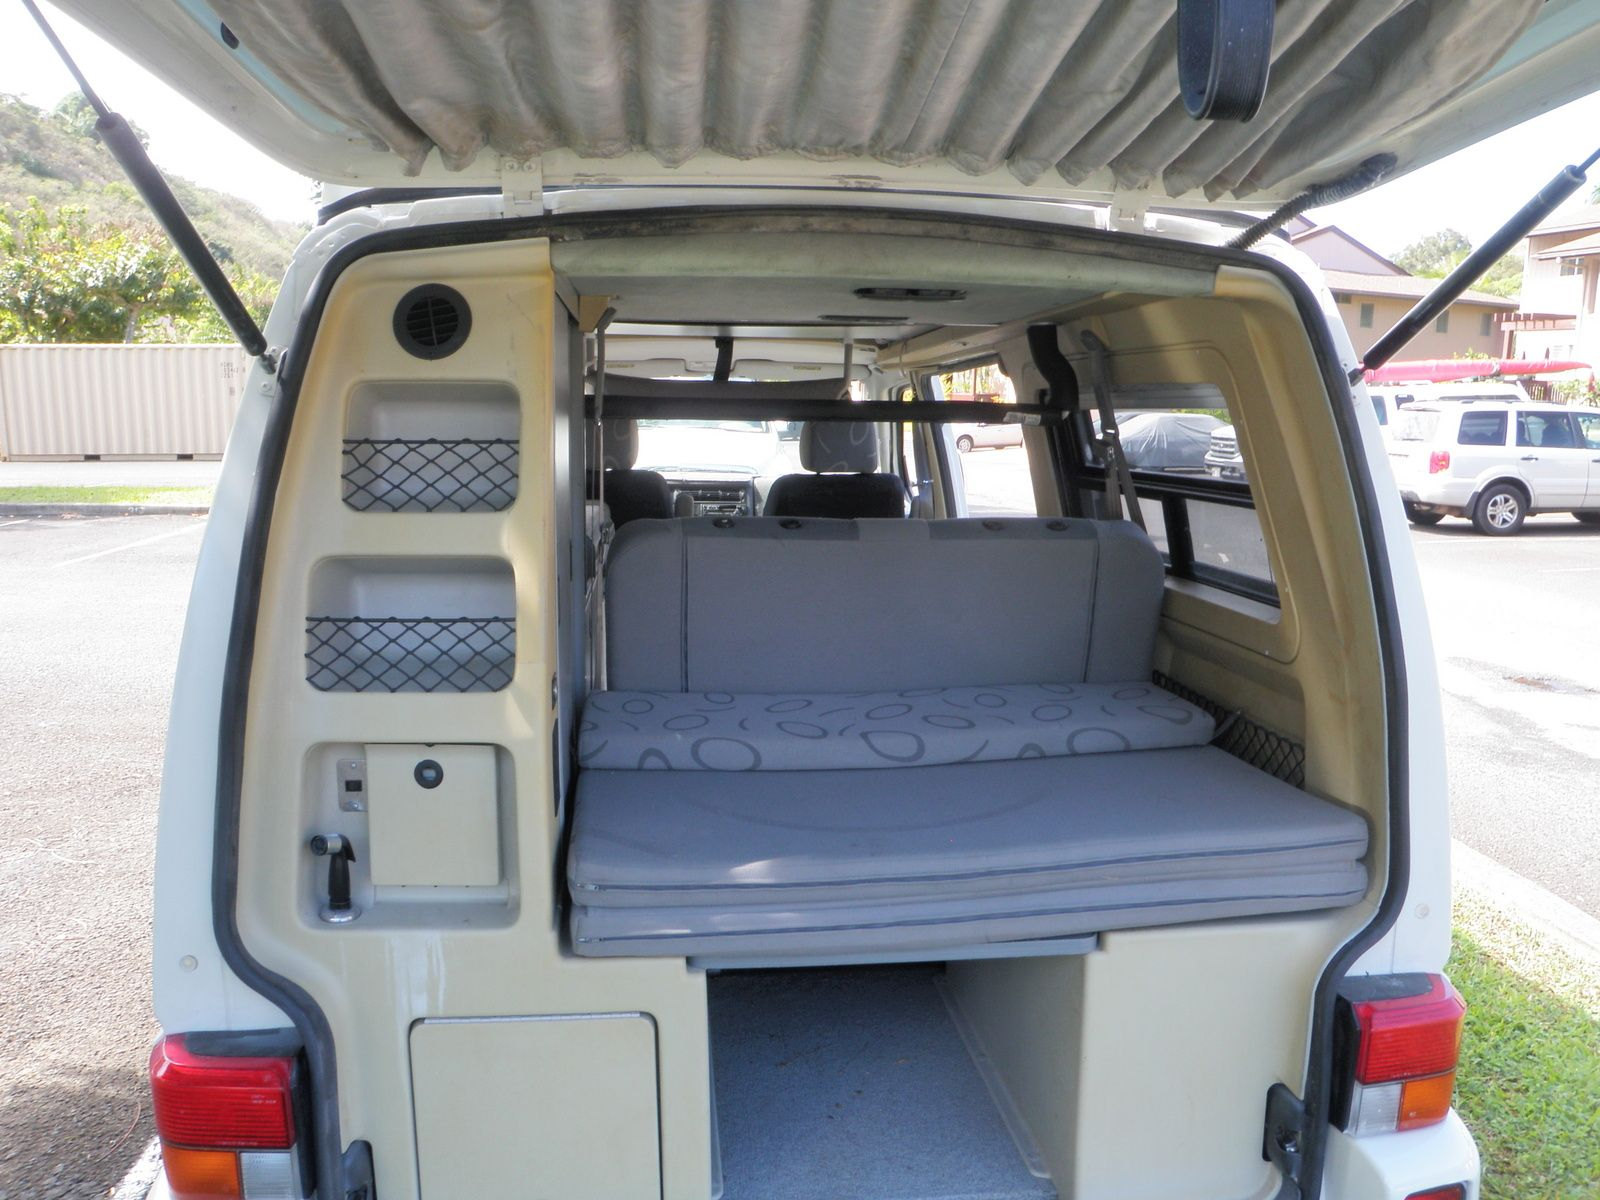 Chevy Astro Van Camper Conversion